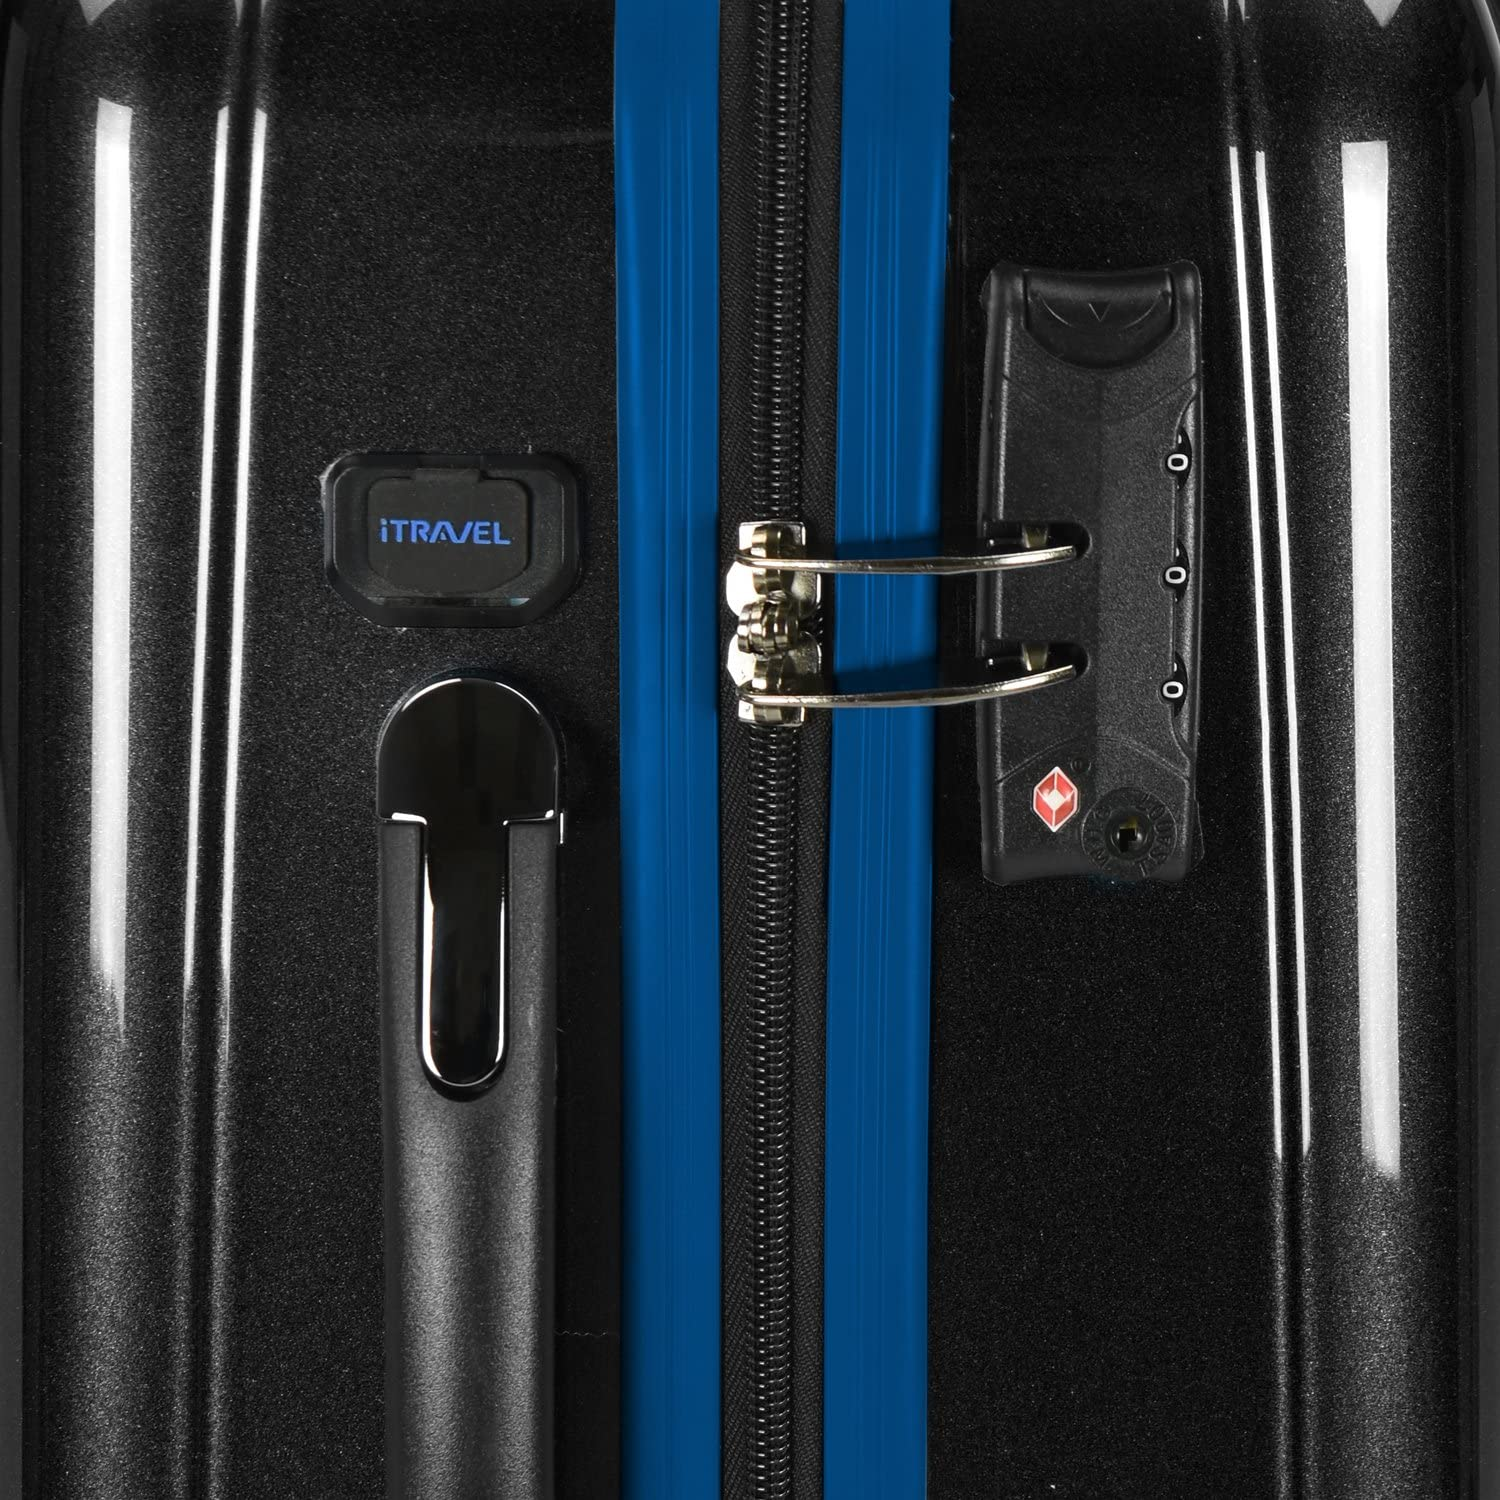 Traveler Ez-Charge Spinner Luggage with USB Port and TSA Lock U.S Black